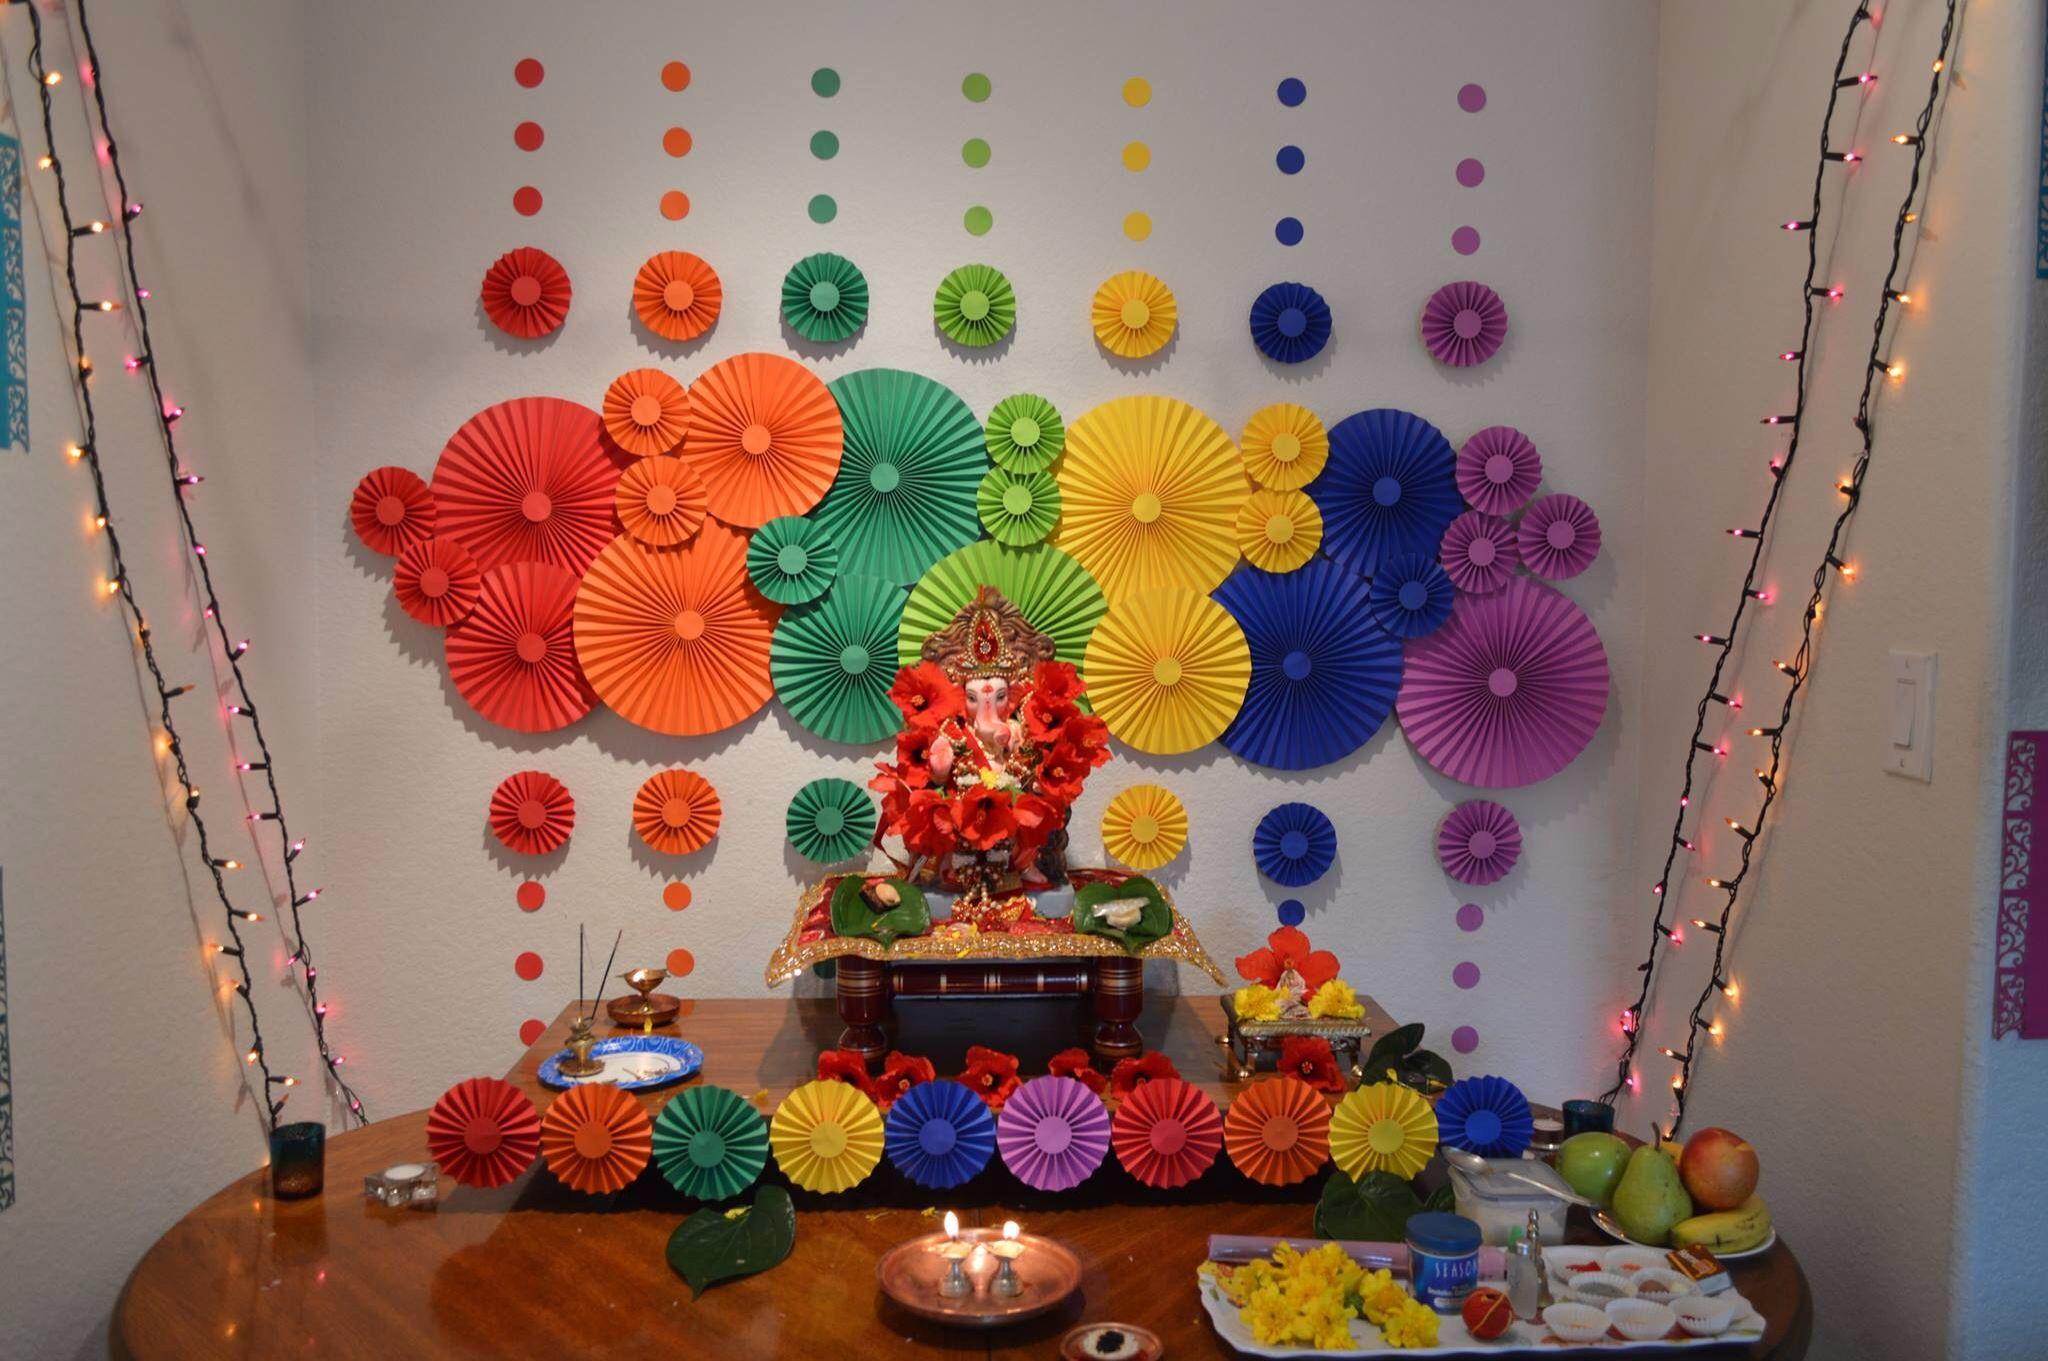 Ganapati decor | My DIY board | Pinterest | Decoration, Diwali and ... for Flower Decoration Ideas For Ganpati  150ifm